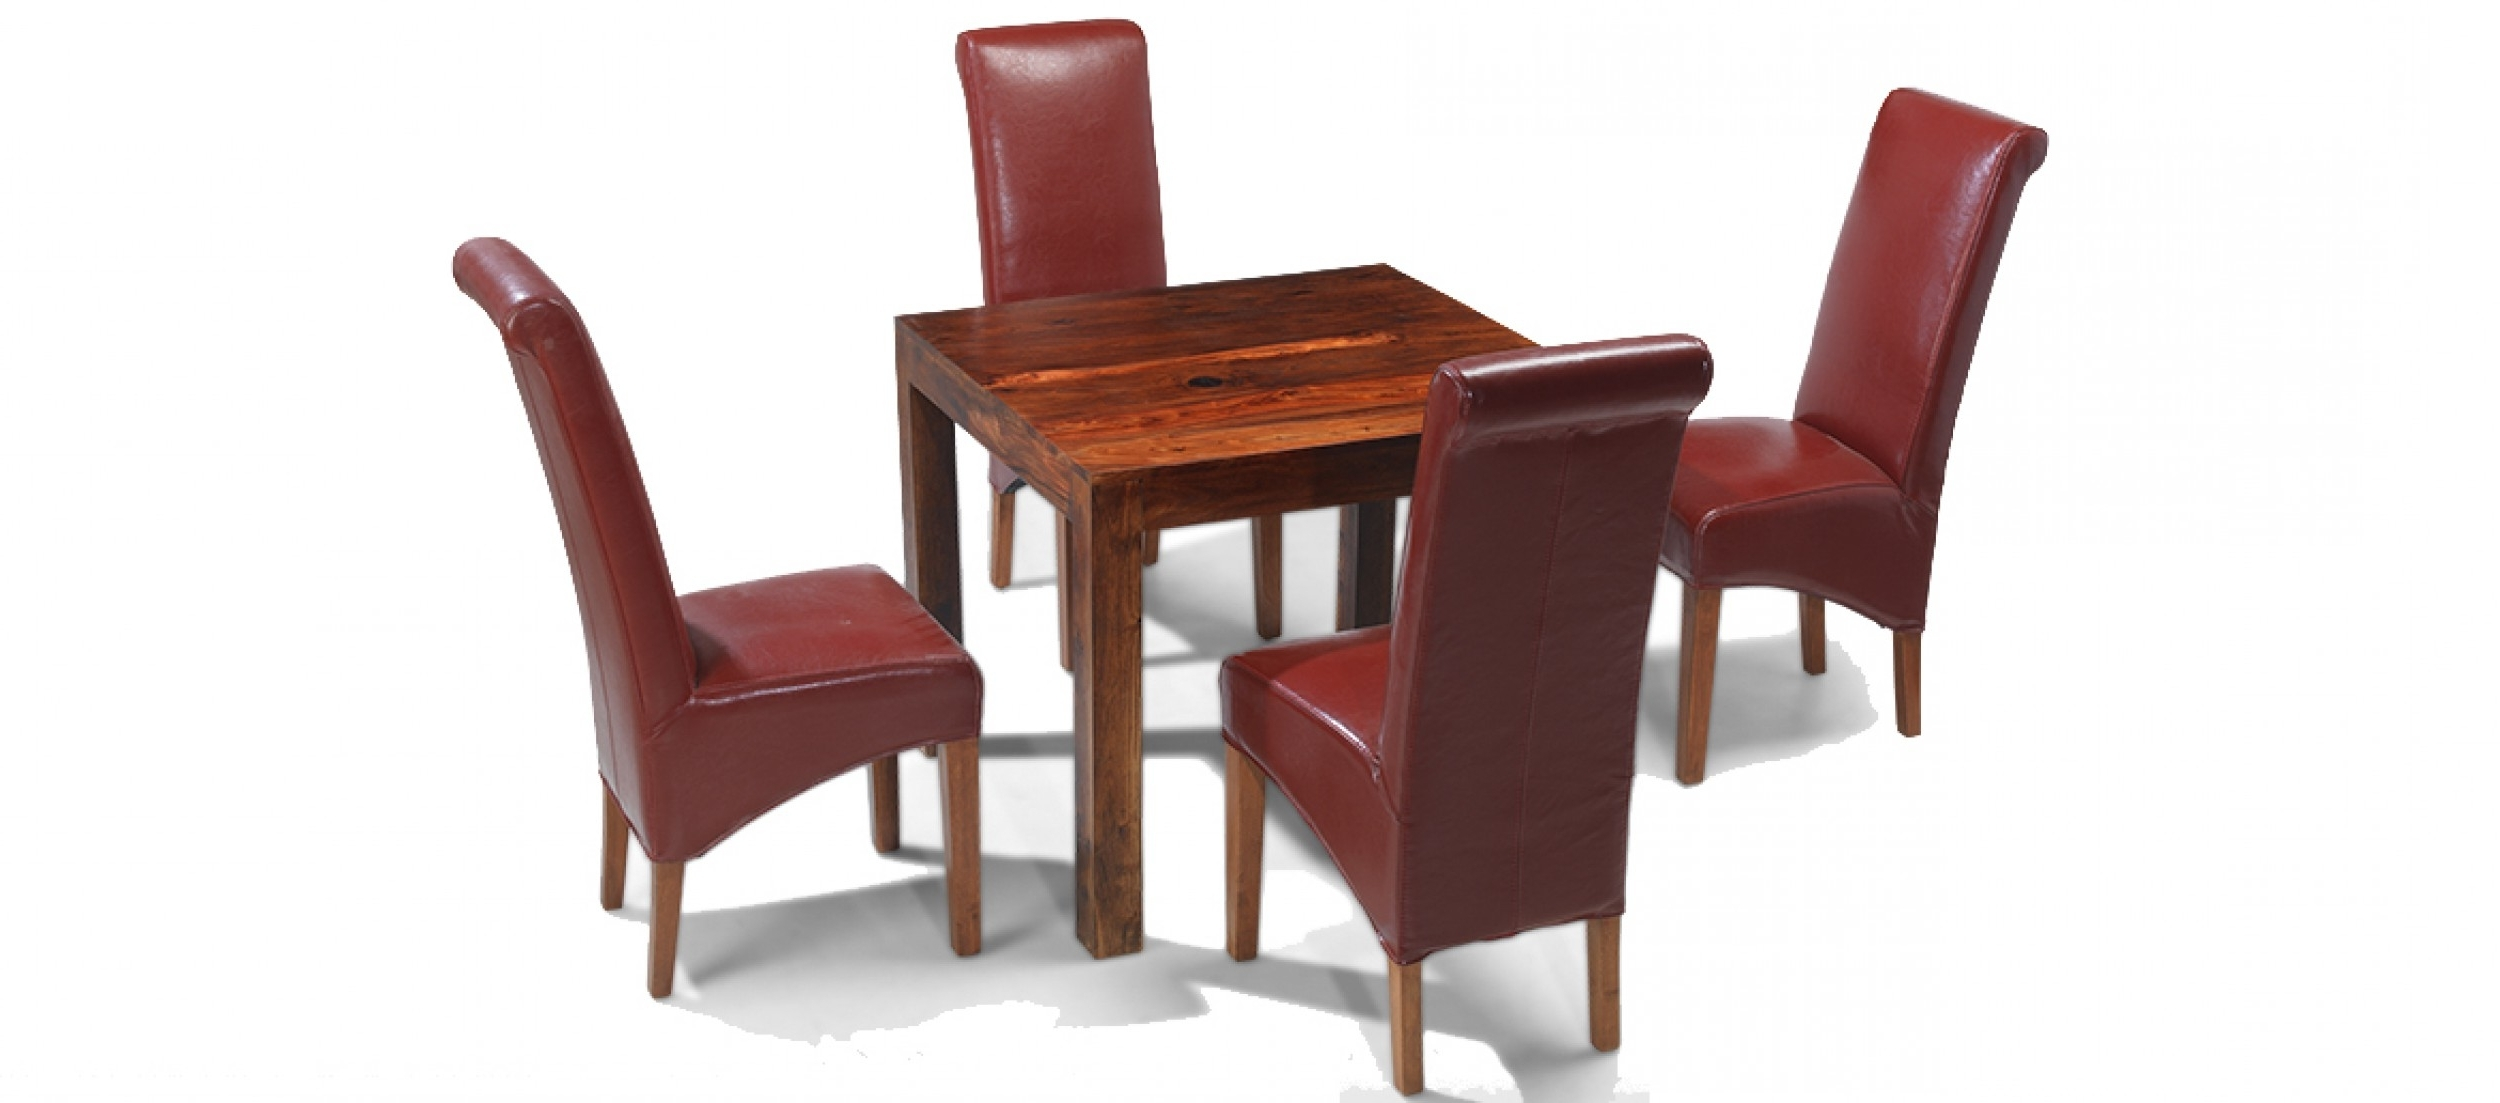 2018 Cube Sheesham 90 Cm Dining Table And 4 Chairs (Gallery 13 of 25)